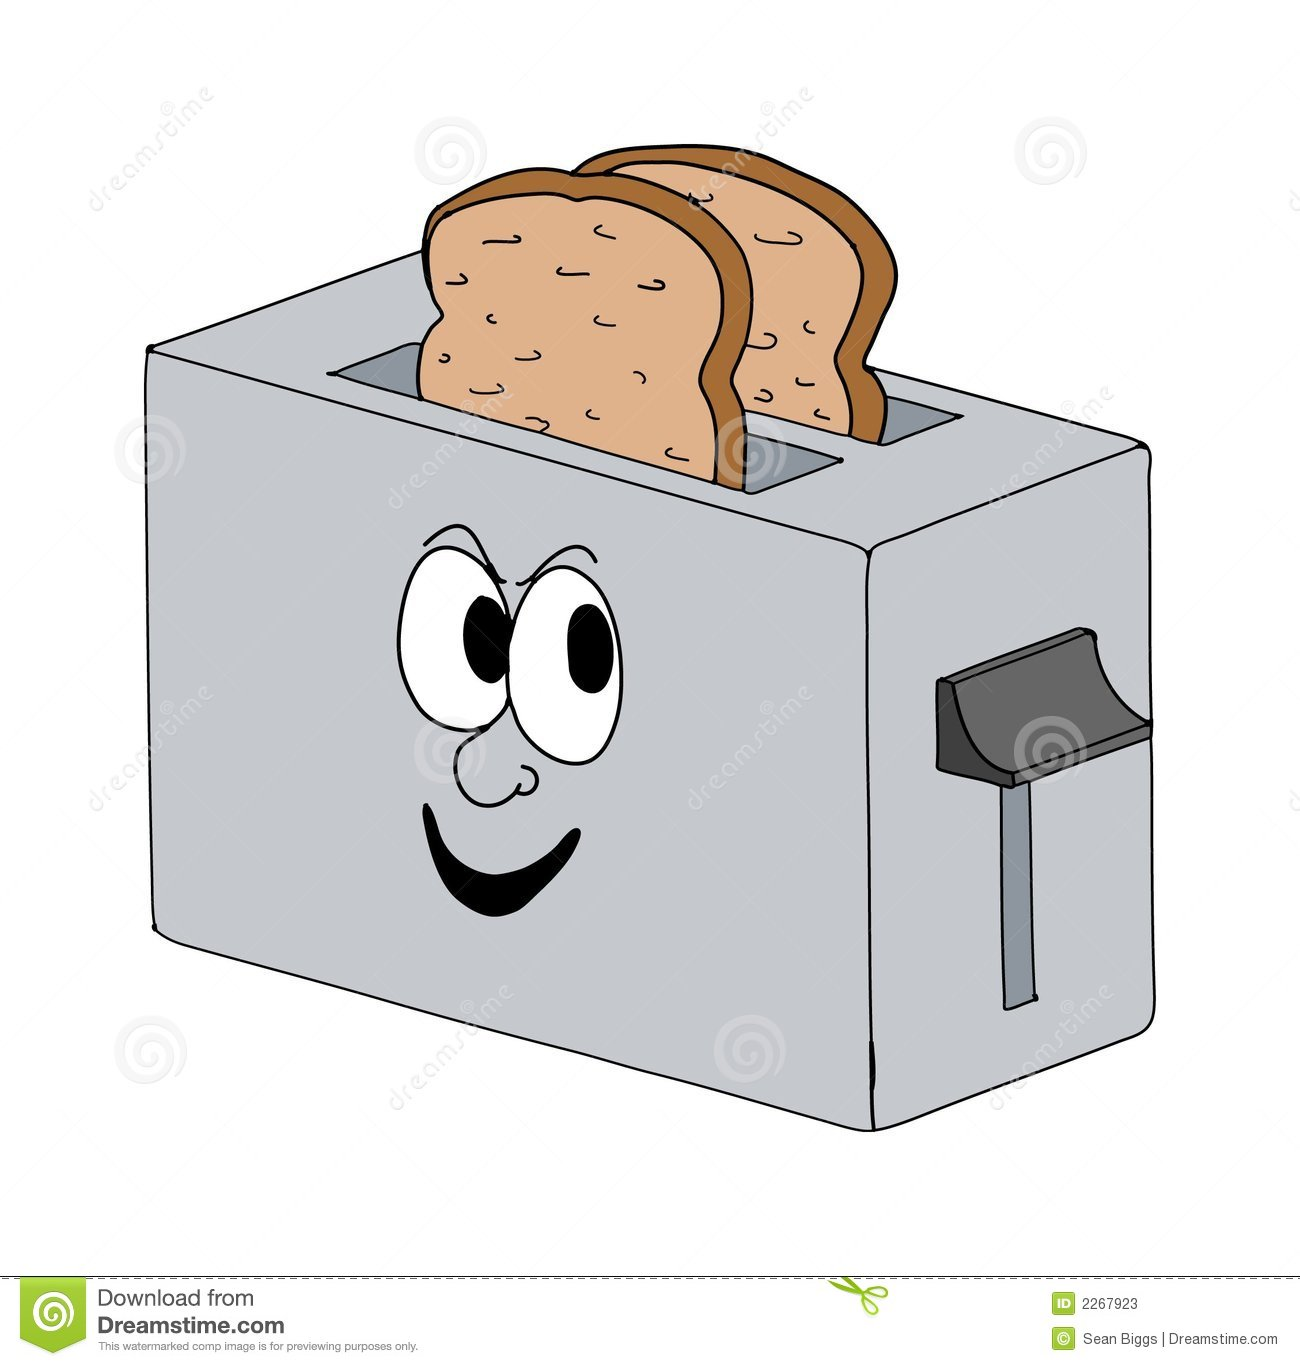 Making It Lovely Smiling Toaster Stock Photos Image 2267923